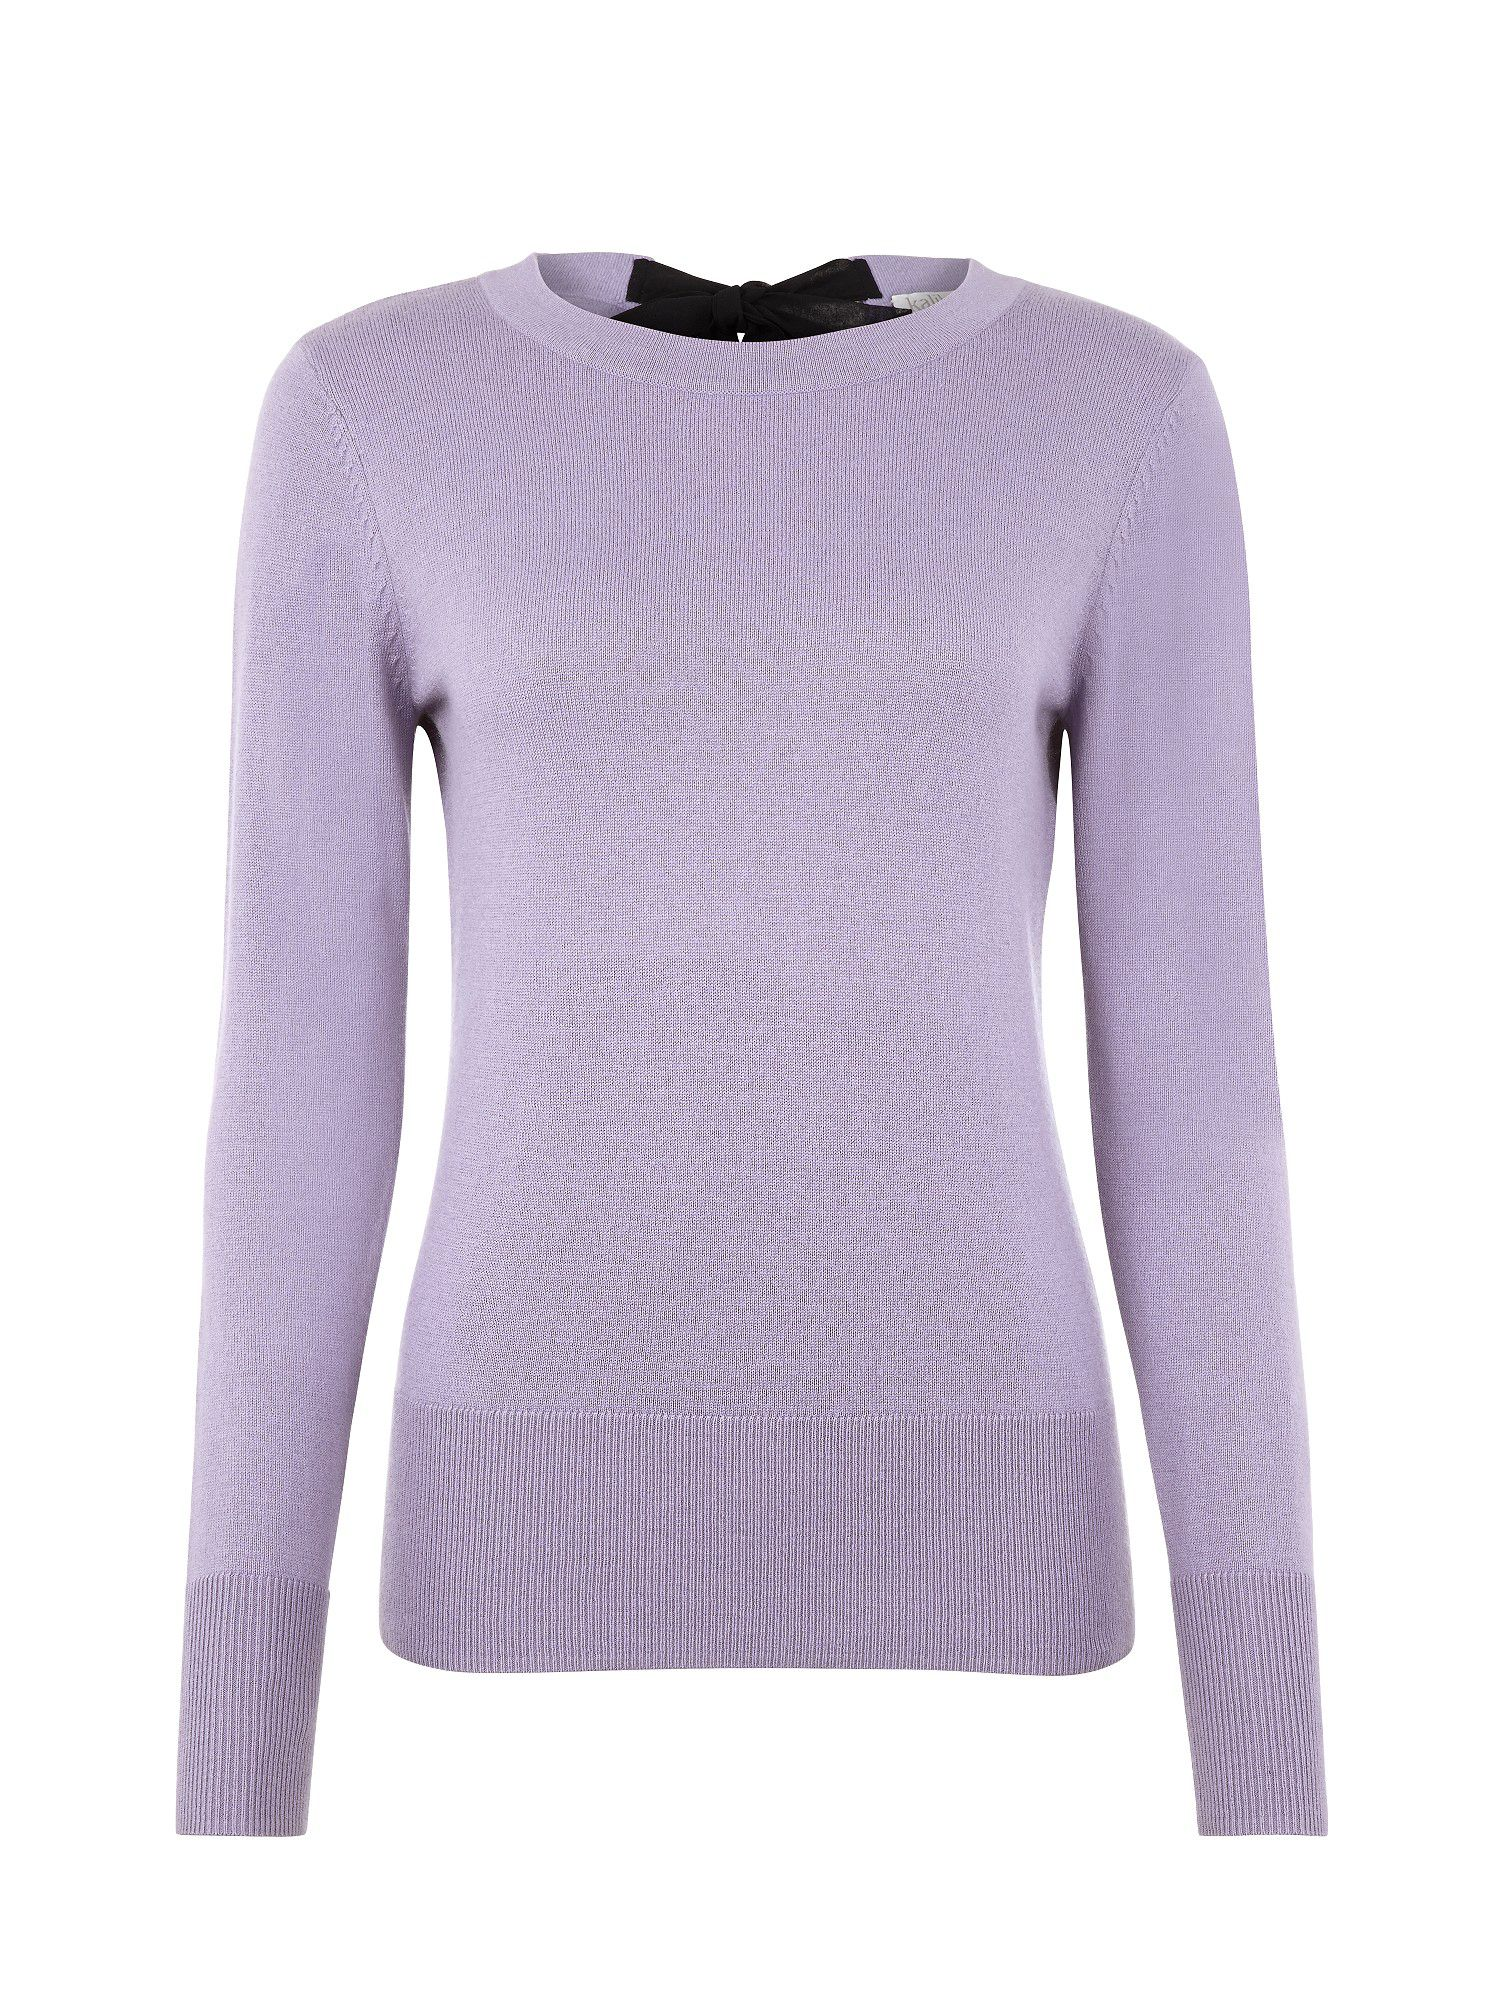 Lilac bow detail jumper